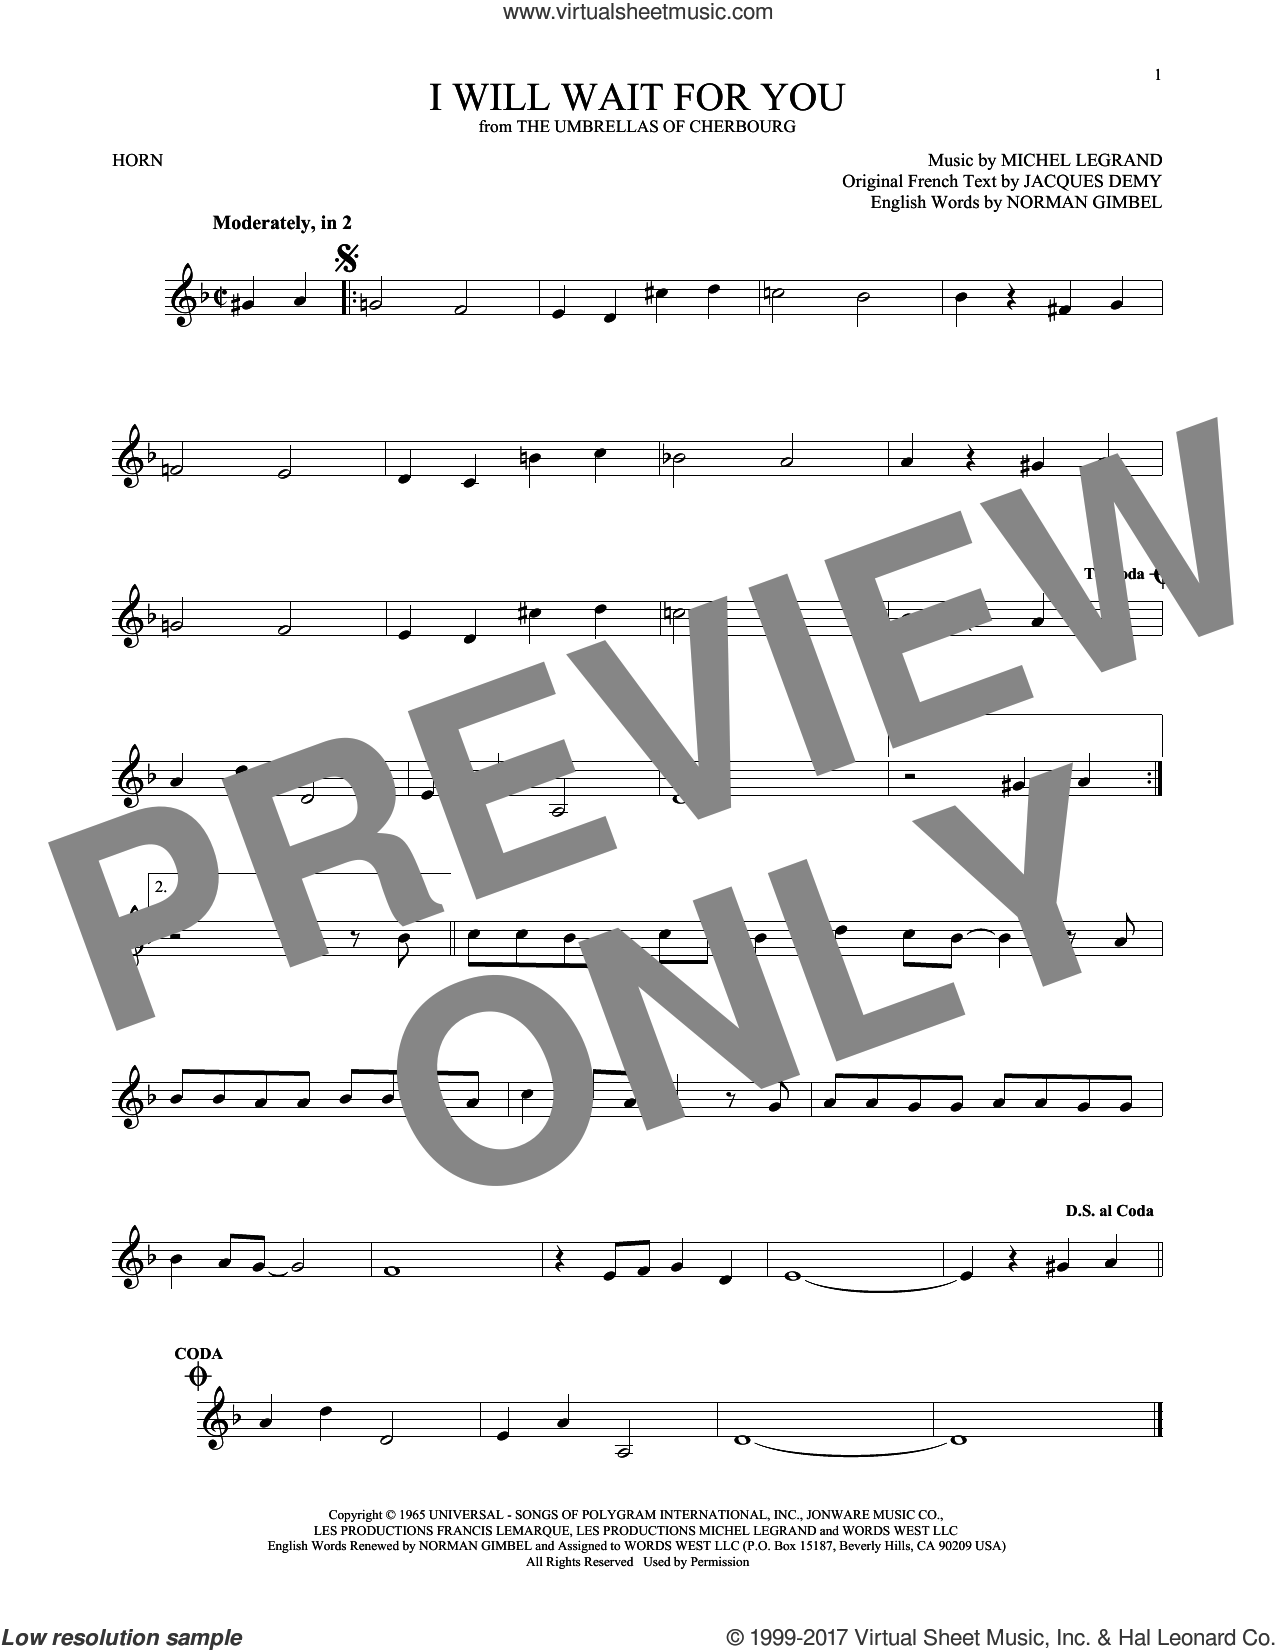 I Will Wait For You sheet music for horn solo by Michel Legrand, Jacques Demy and Norman Gimbel, intermediate skill level